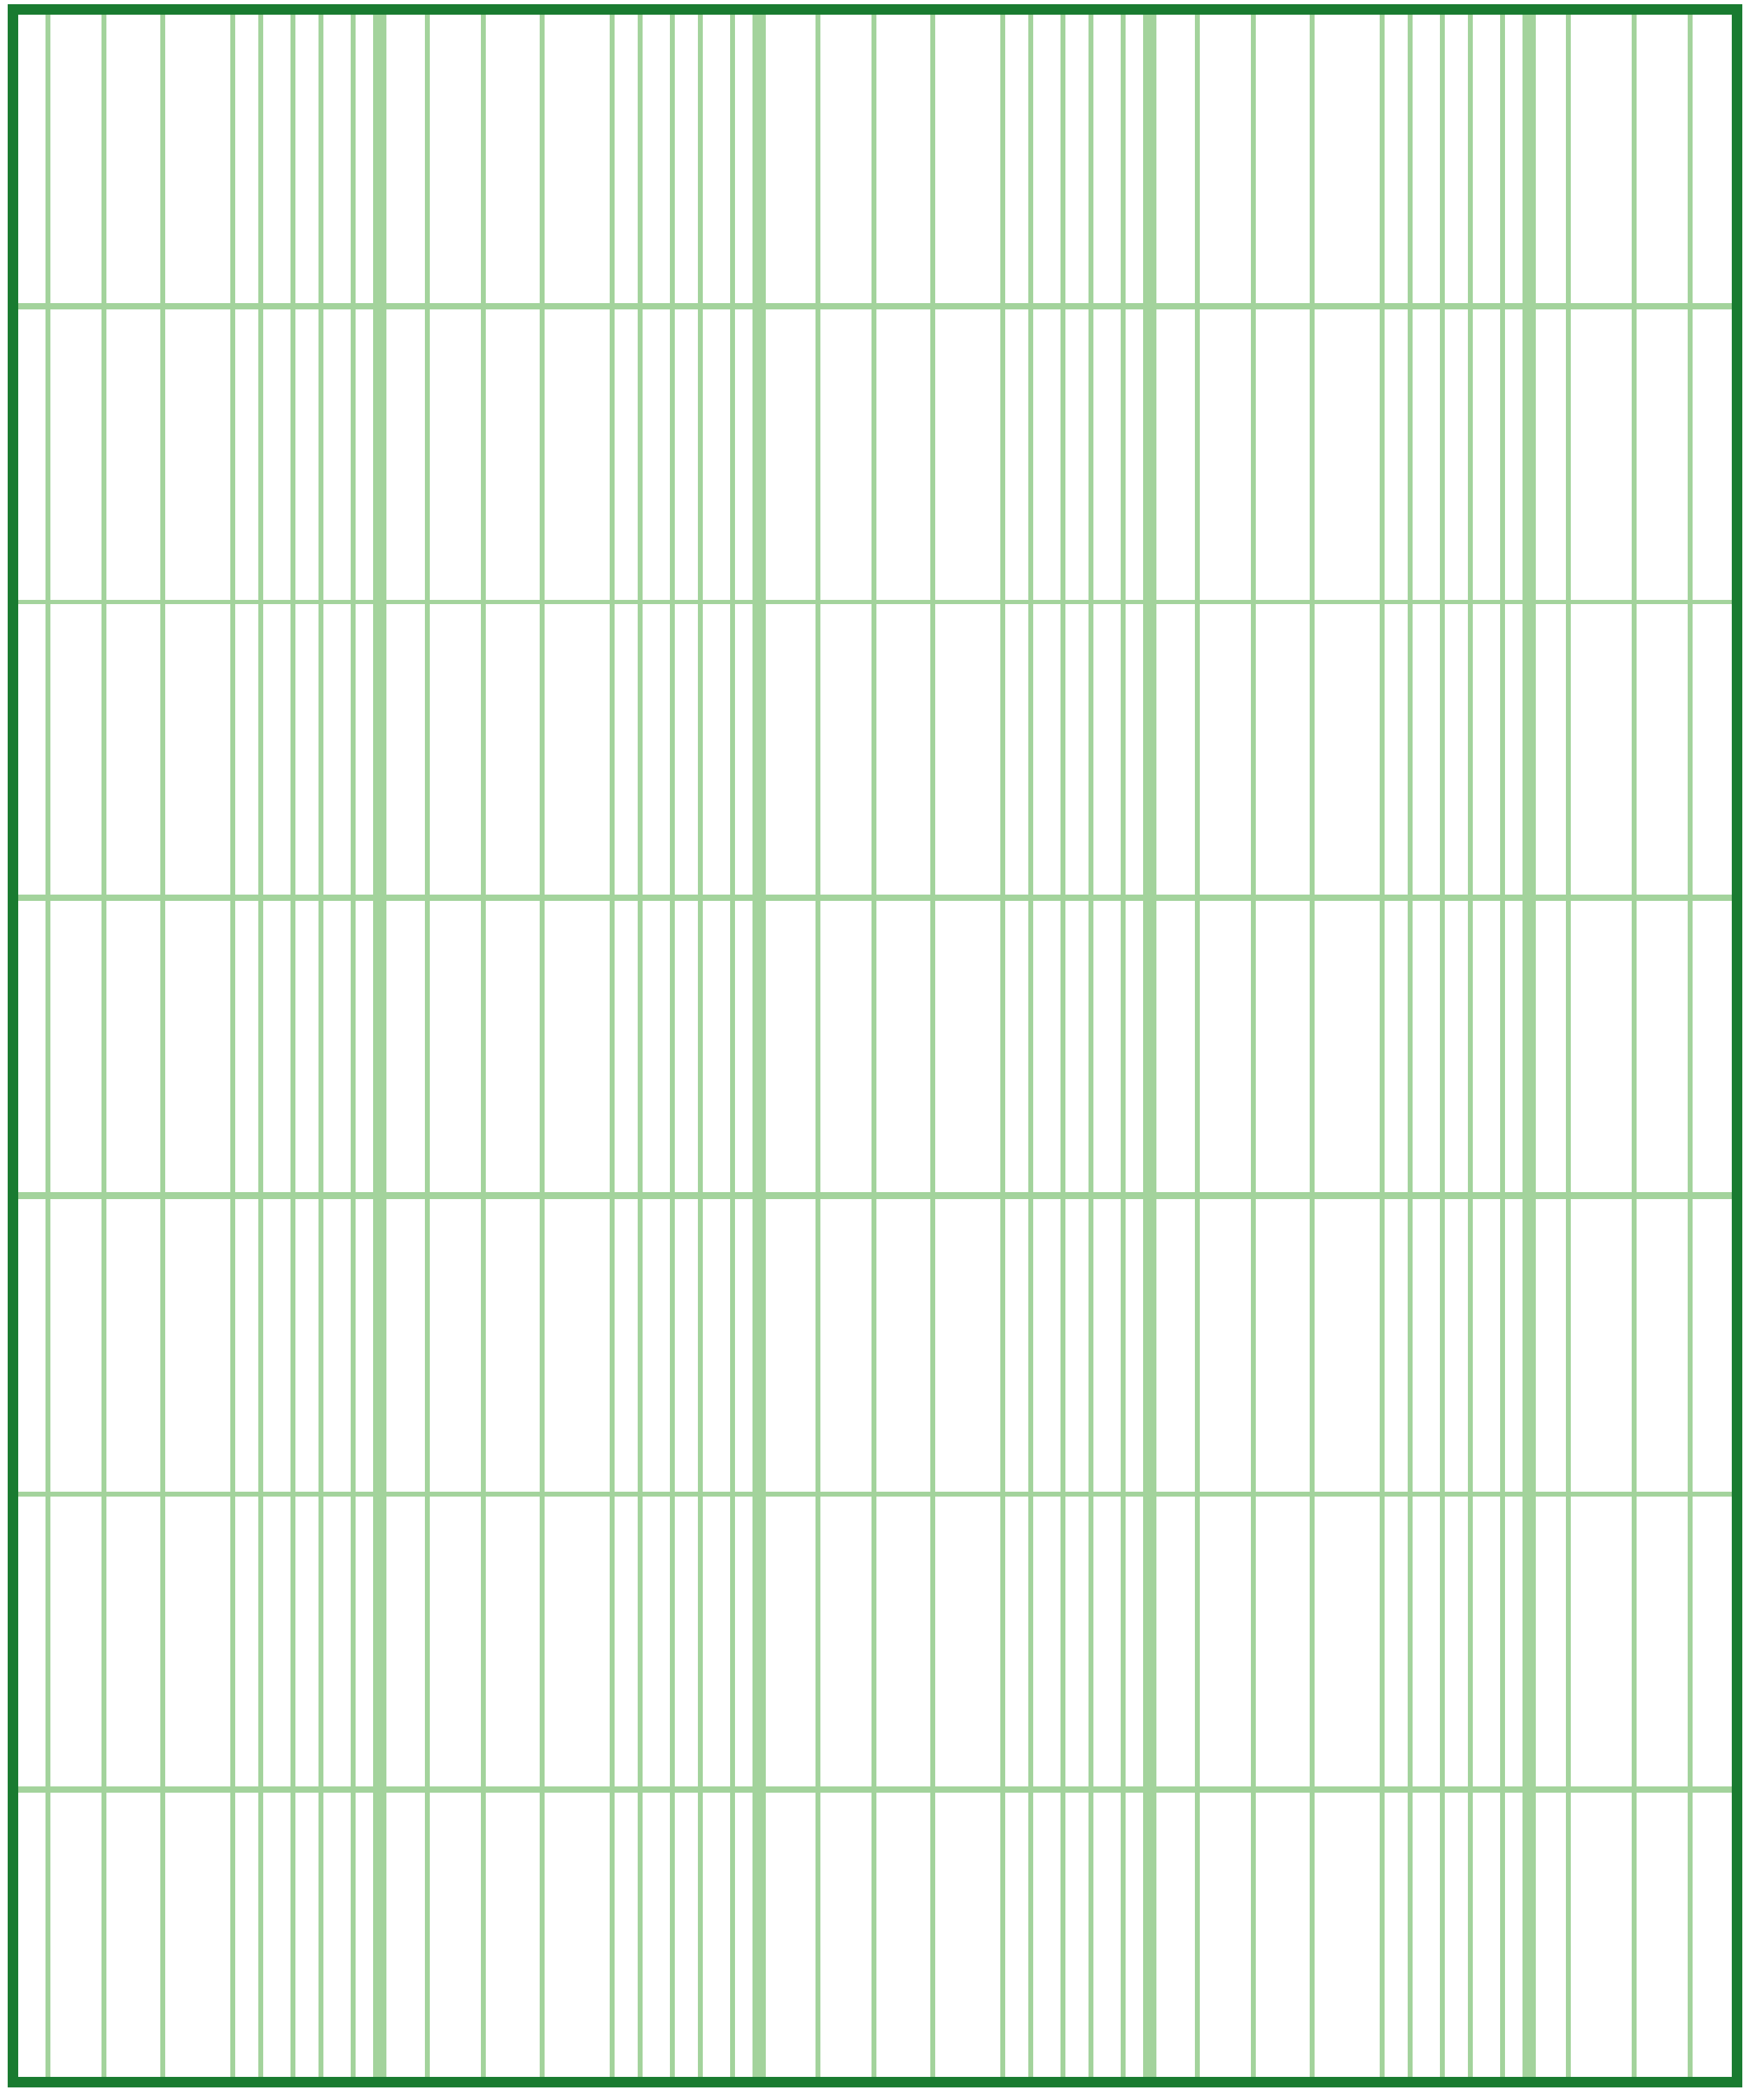 Blank Logarithmic Graph Paper